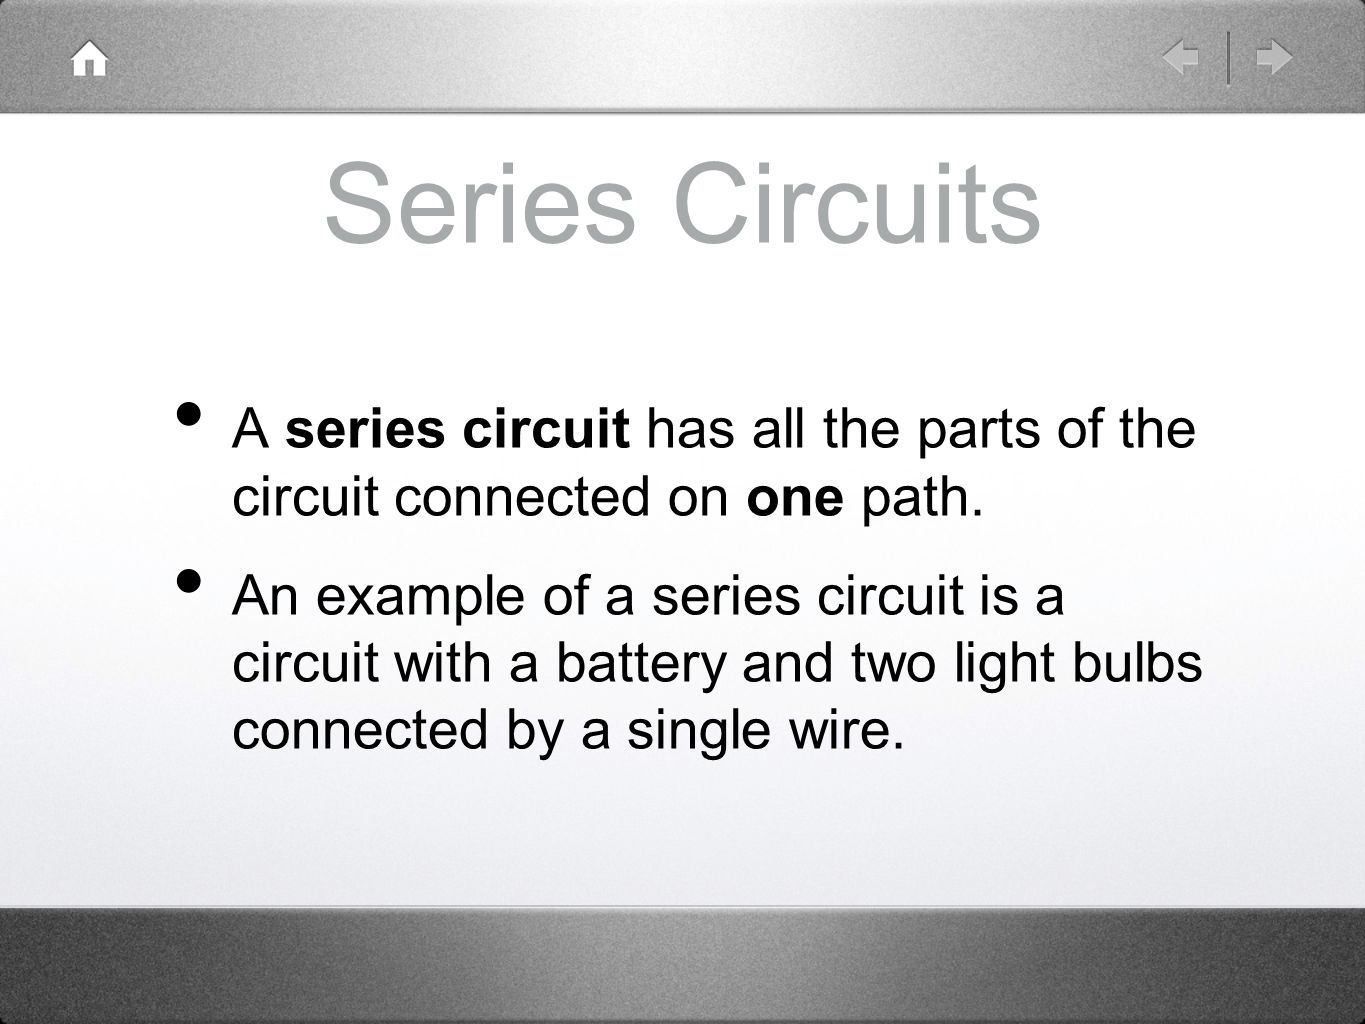 Bellringer Restate Ohms Law As 3 Different Mathematical Equations Series Circuit Examples Real Life Added To The Circuits A Has All Parts Of Connected On One Path